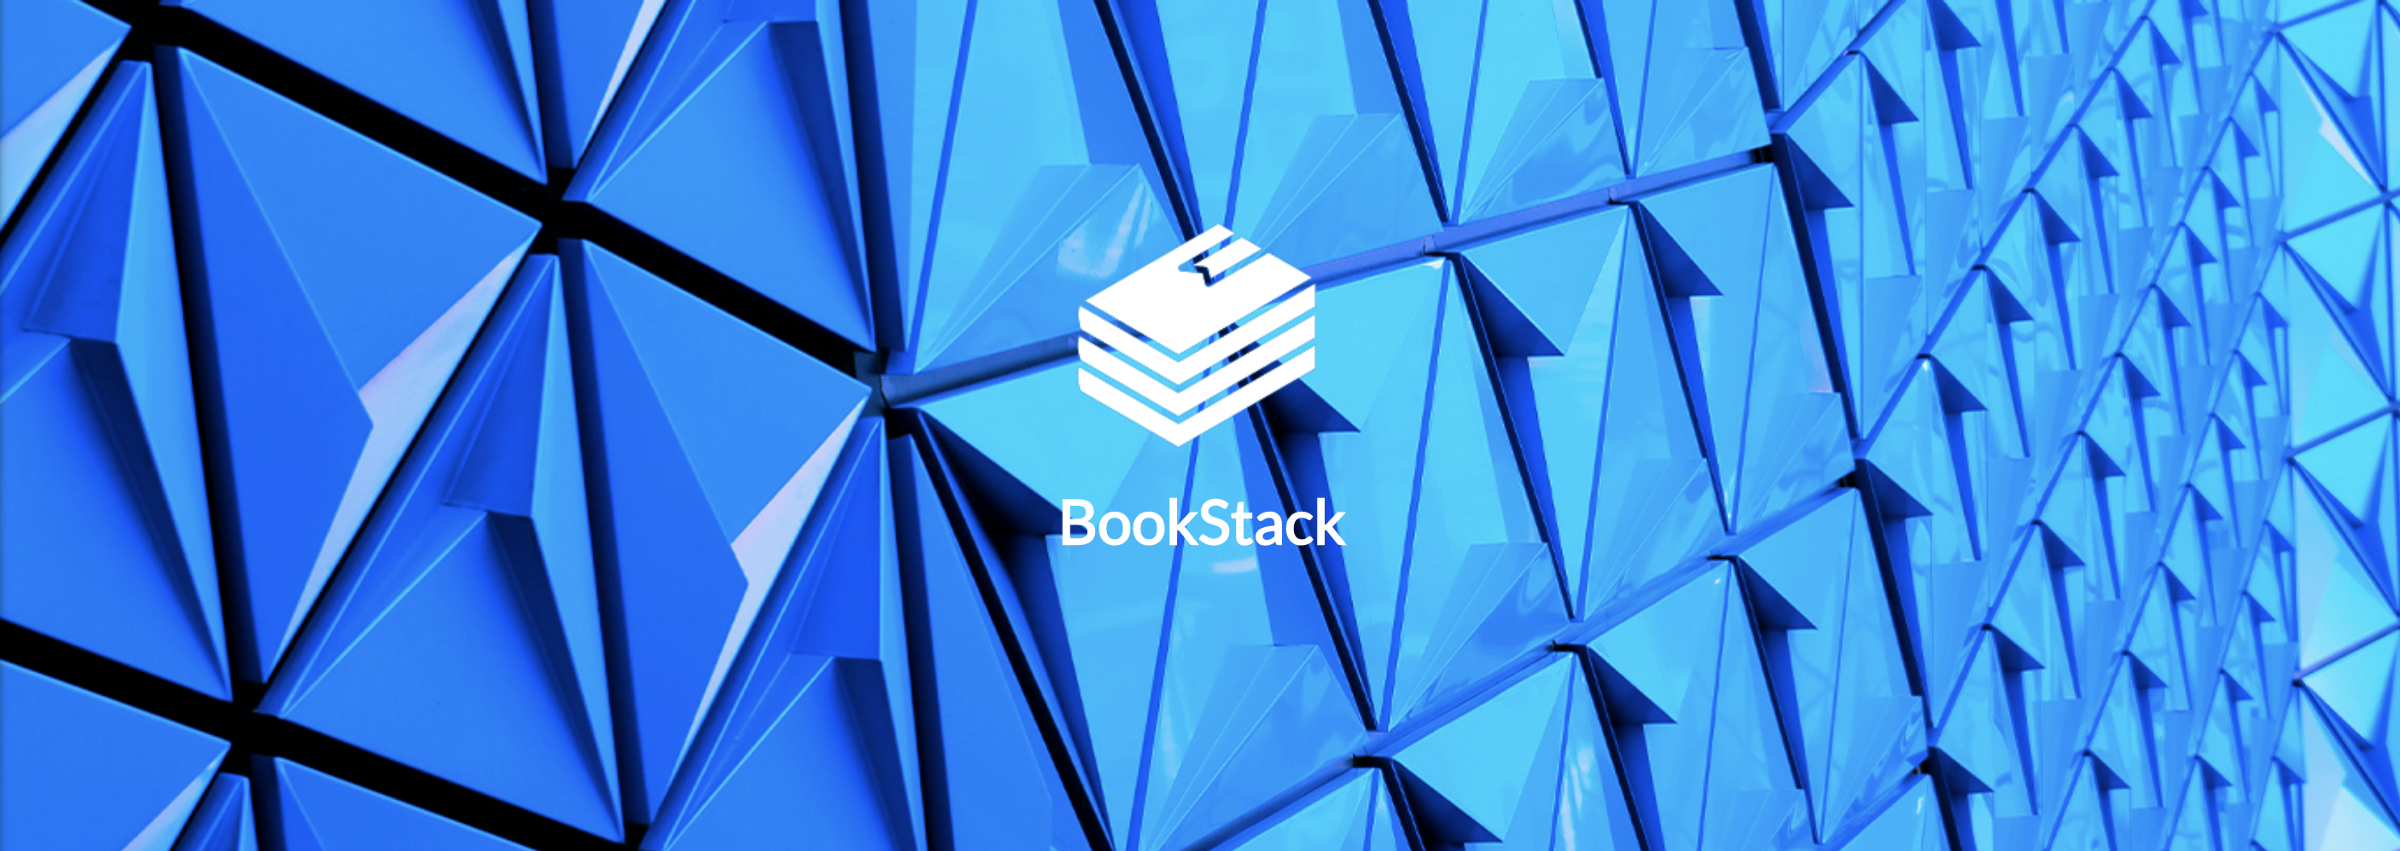 /open-source-exploration-bookstack-4d242c0ccbb2 feature image